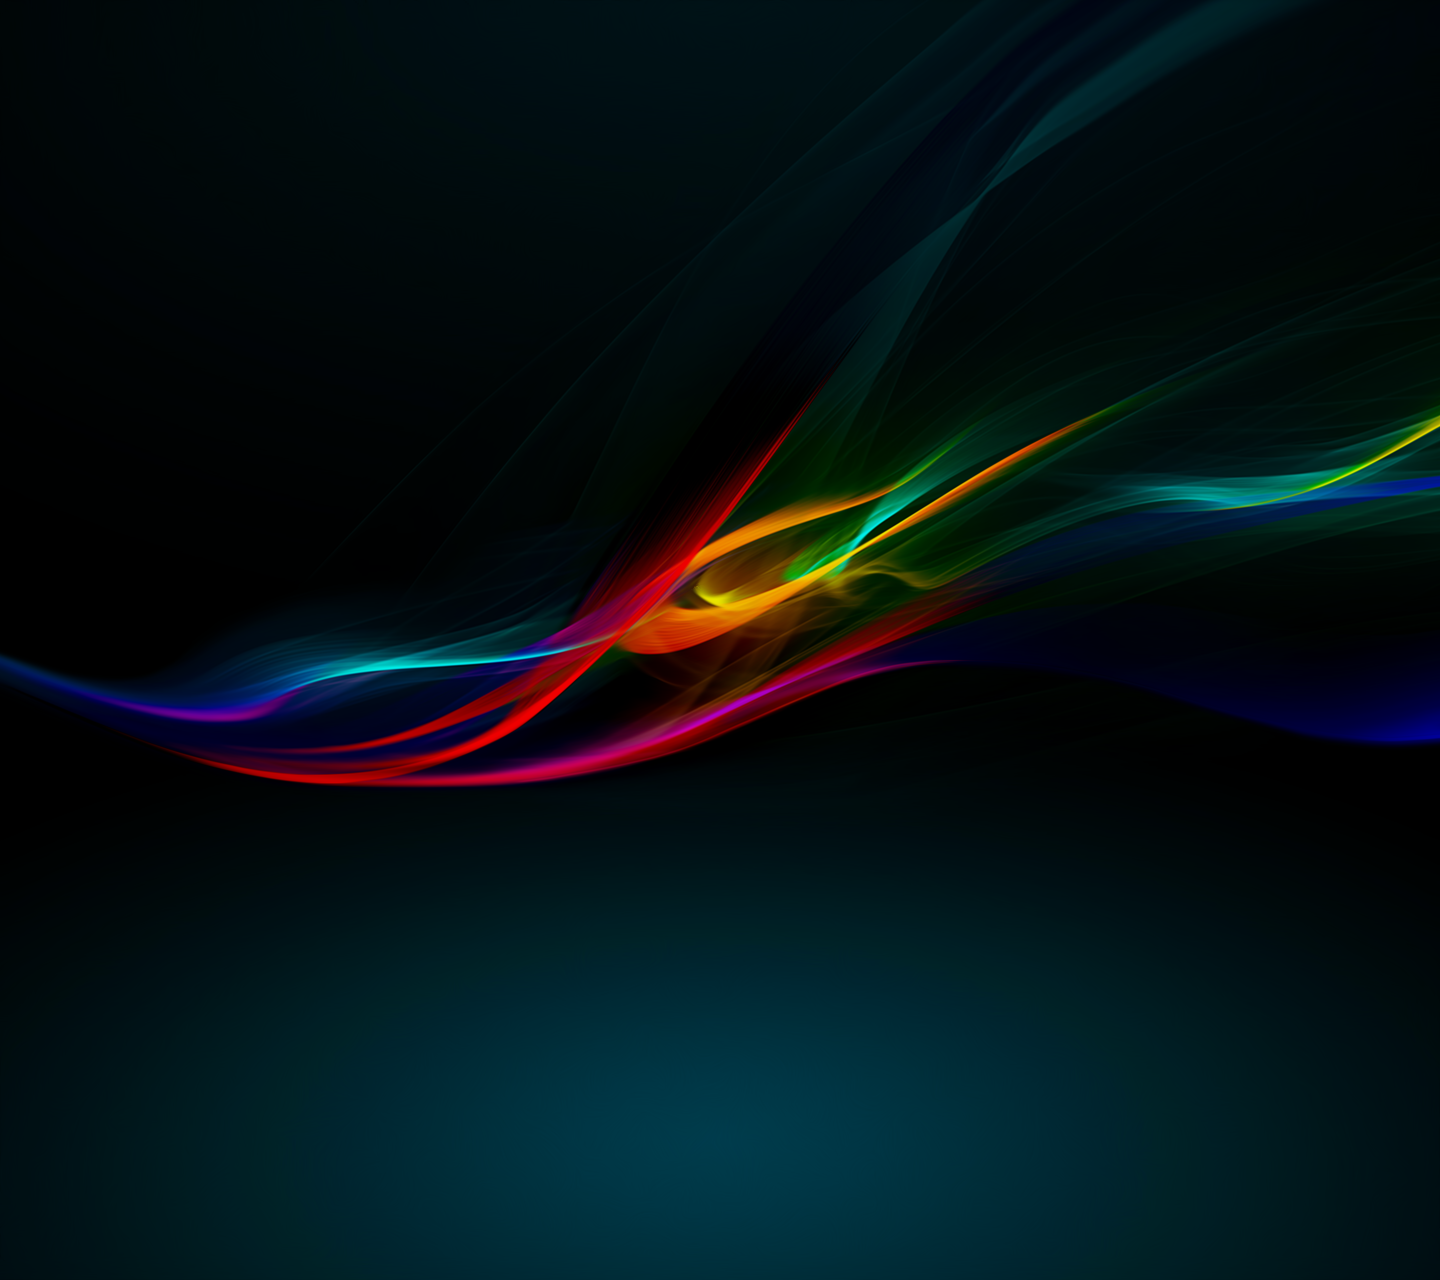 Sony Xperia Z Abstract   HD Wallpapers   Sony Xperia Z Abstract 1440x1280